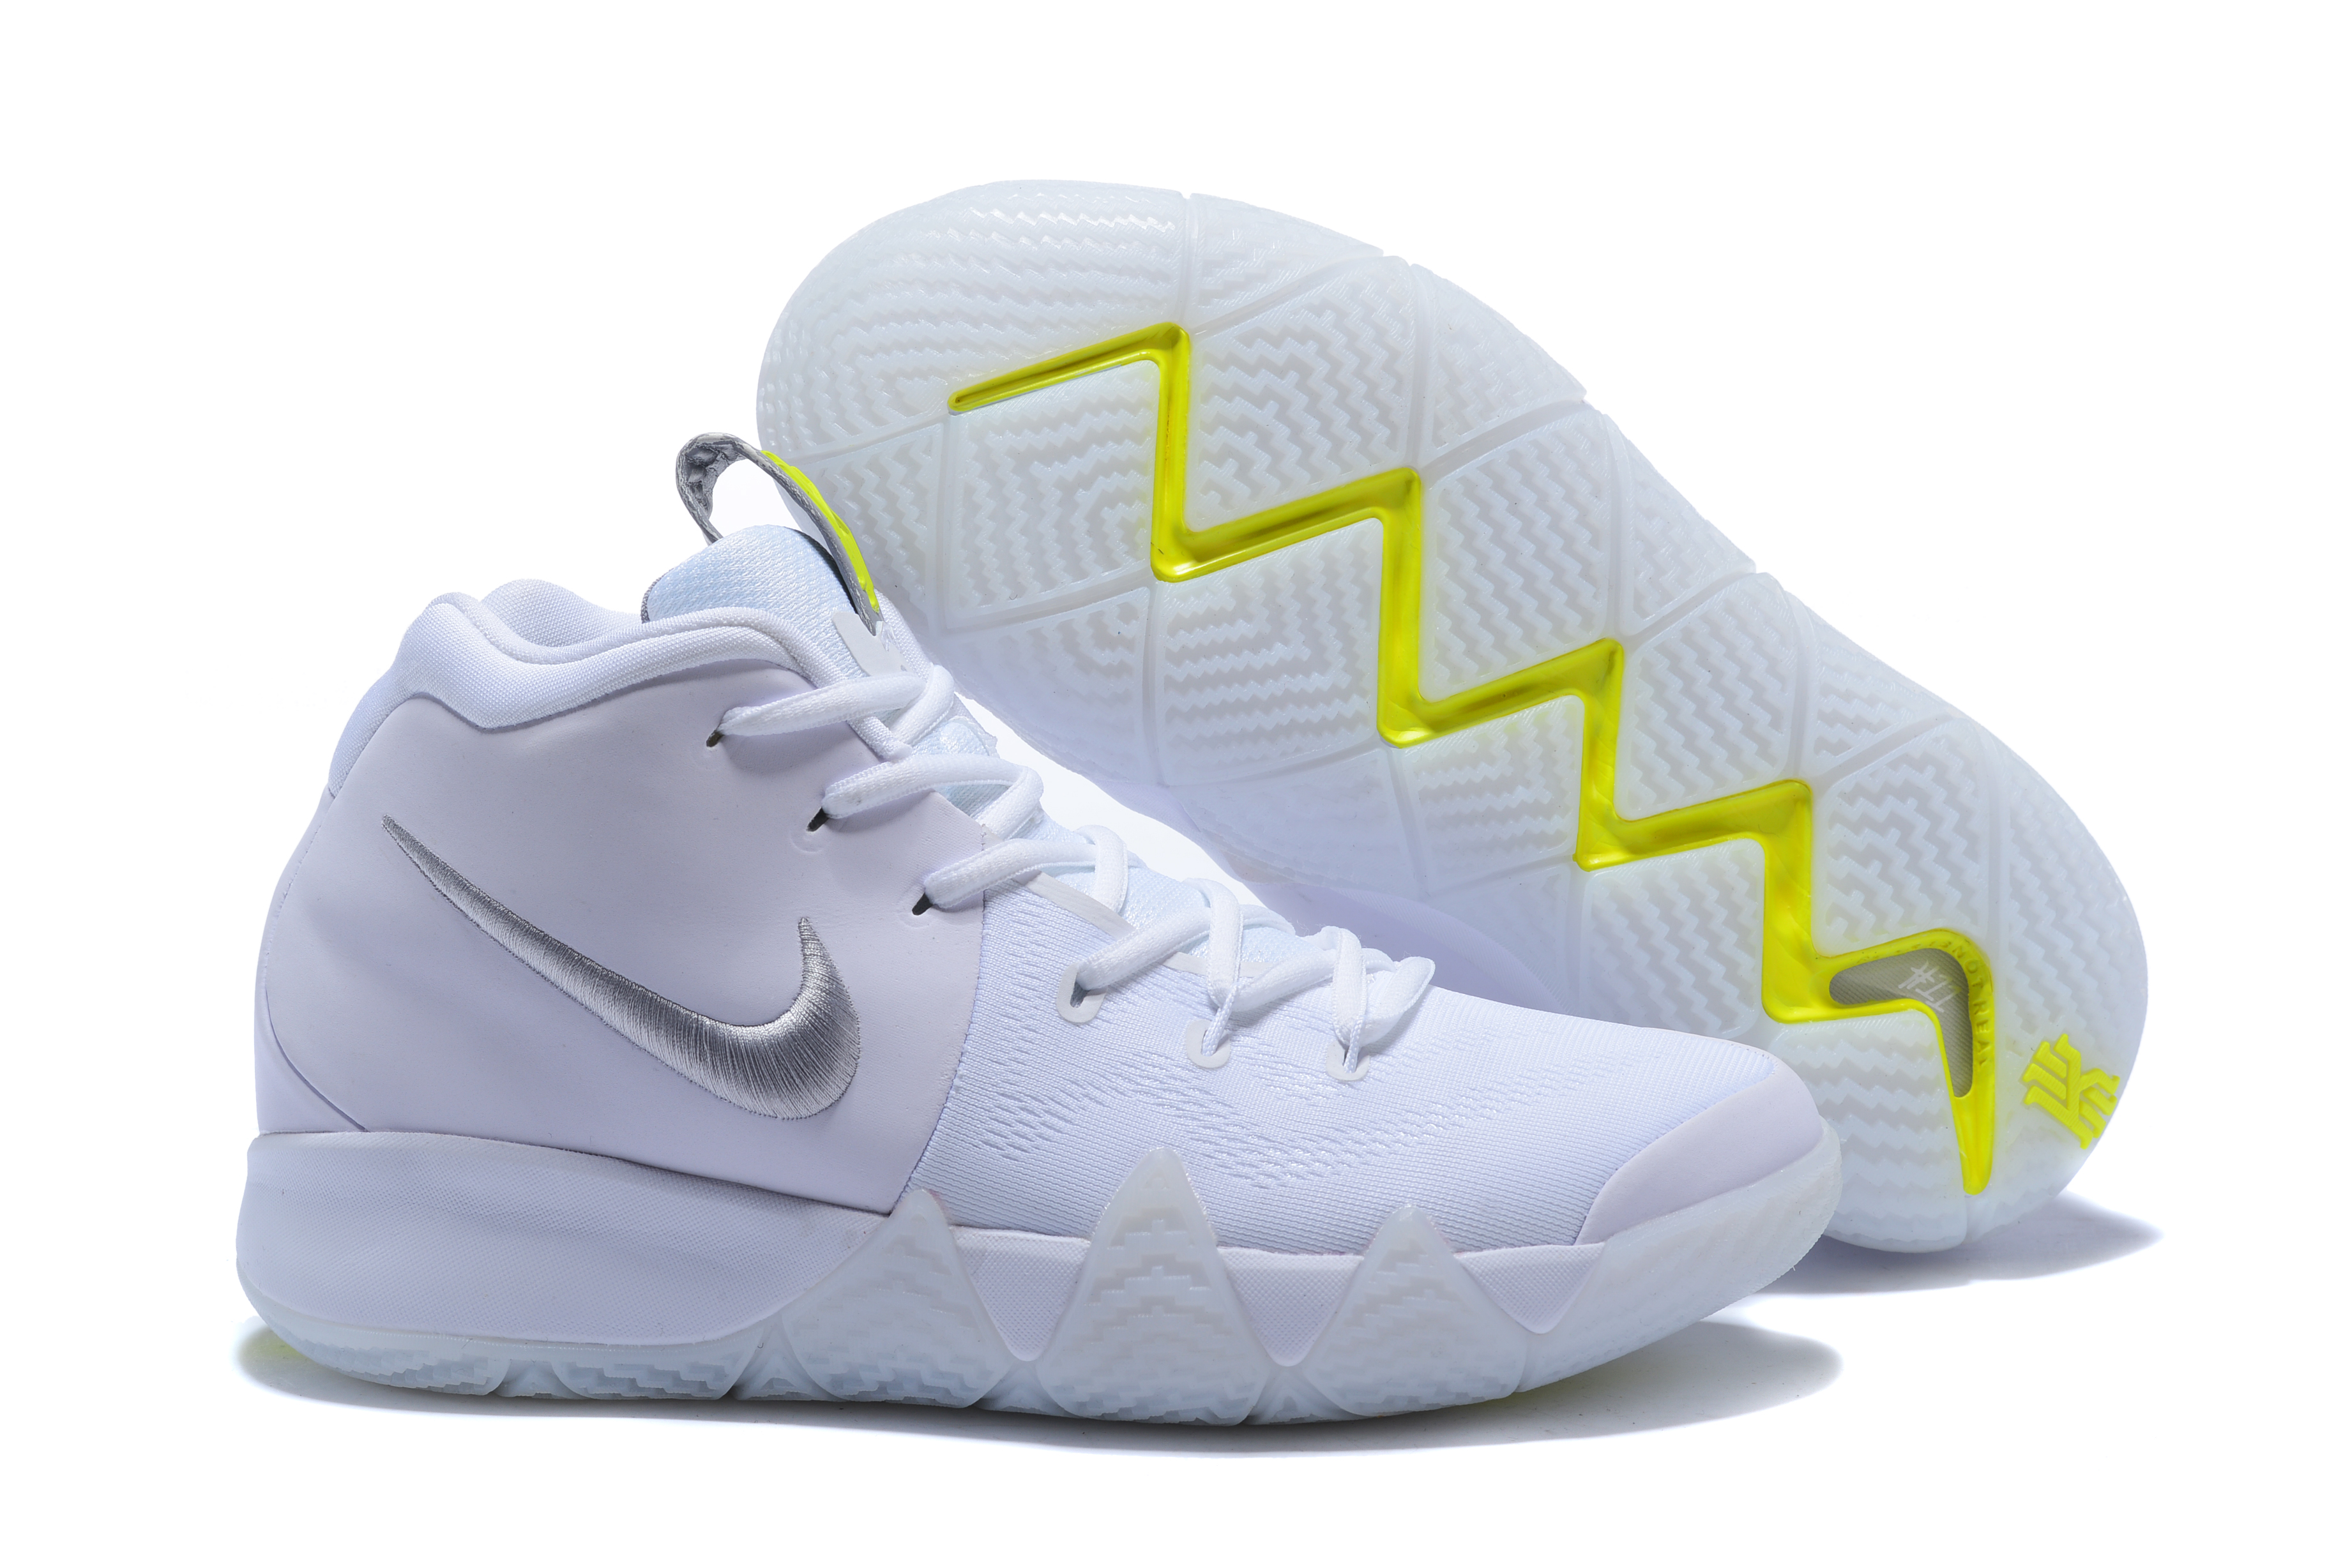 New Nike Kyrie 4 White Sliver Shoes